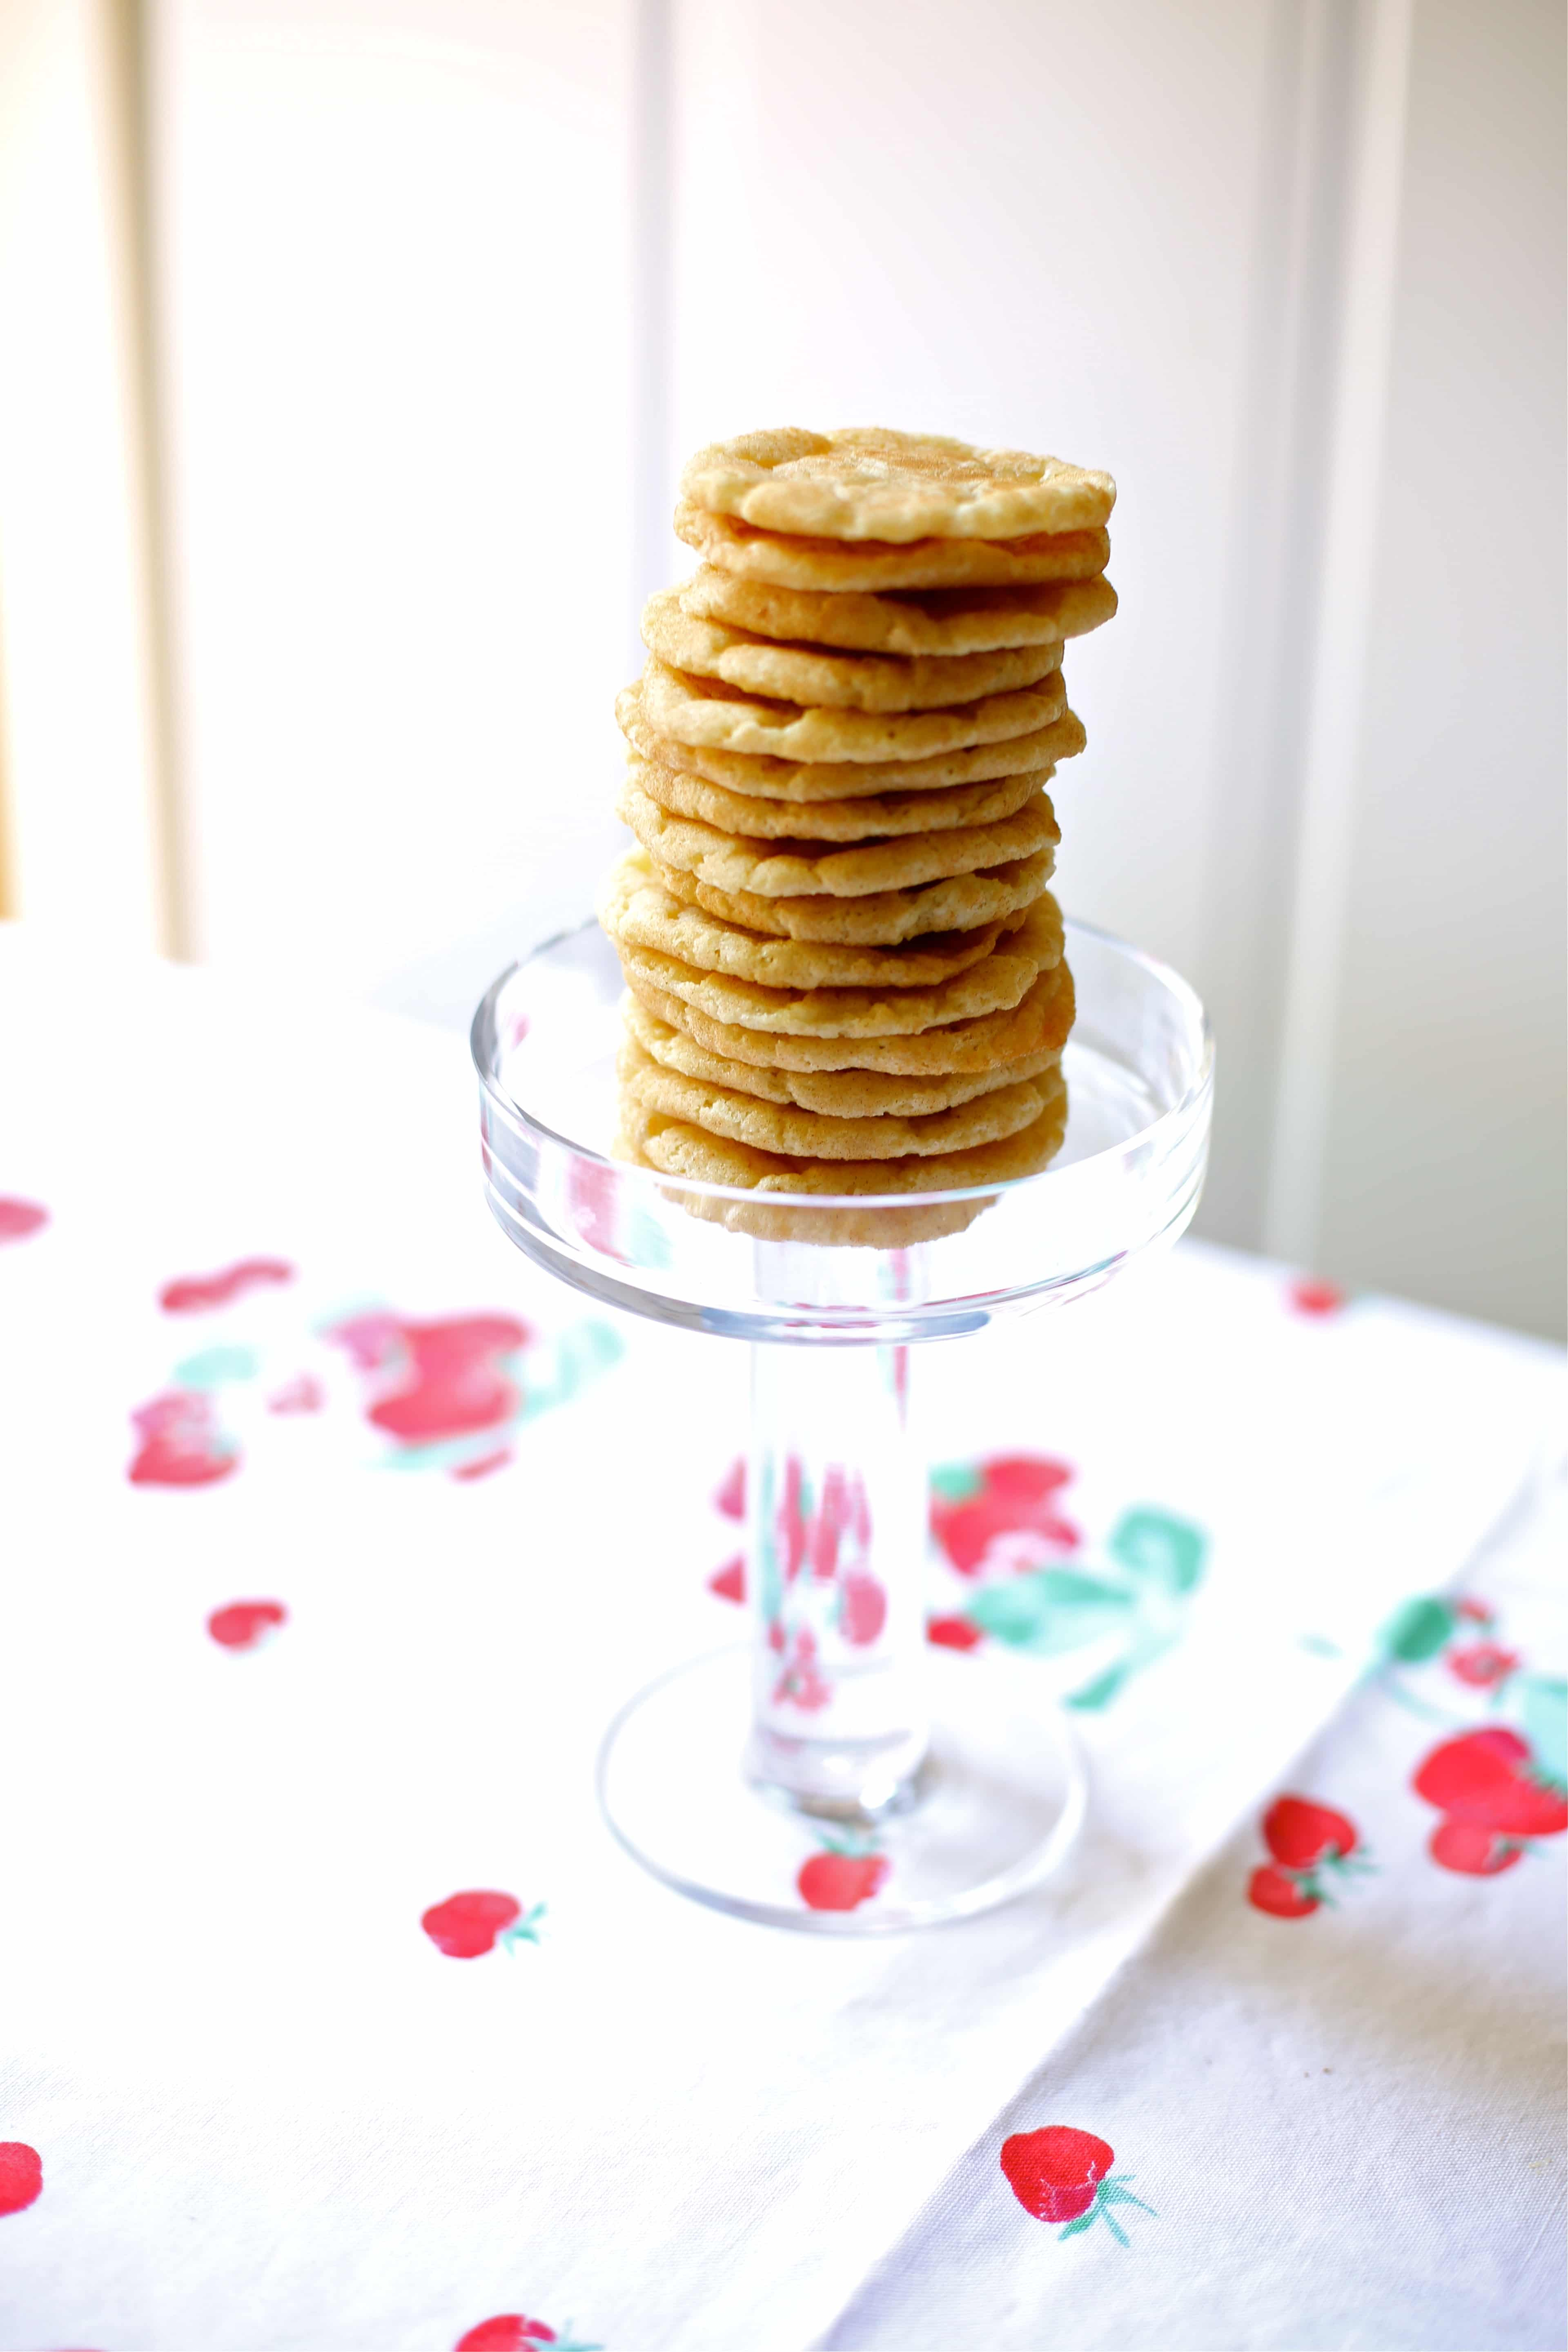 a tower of cookies on a glass tray on a tablecloth